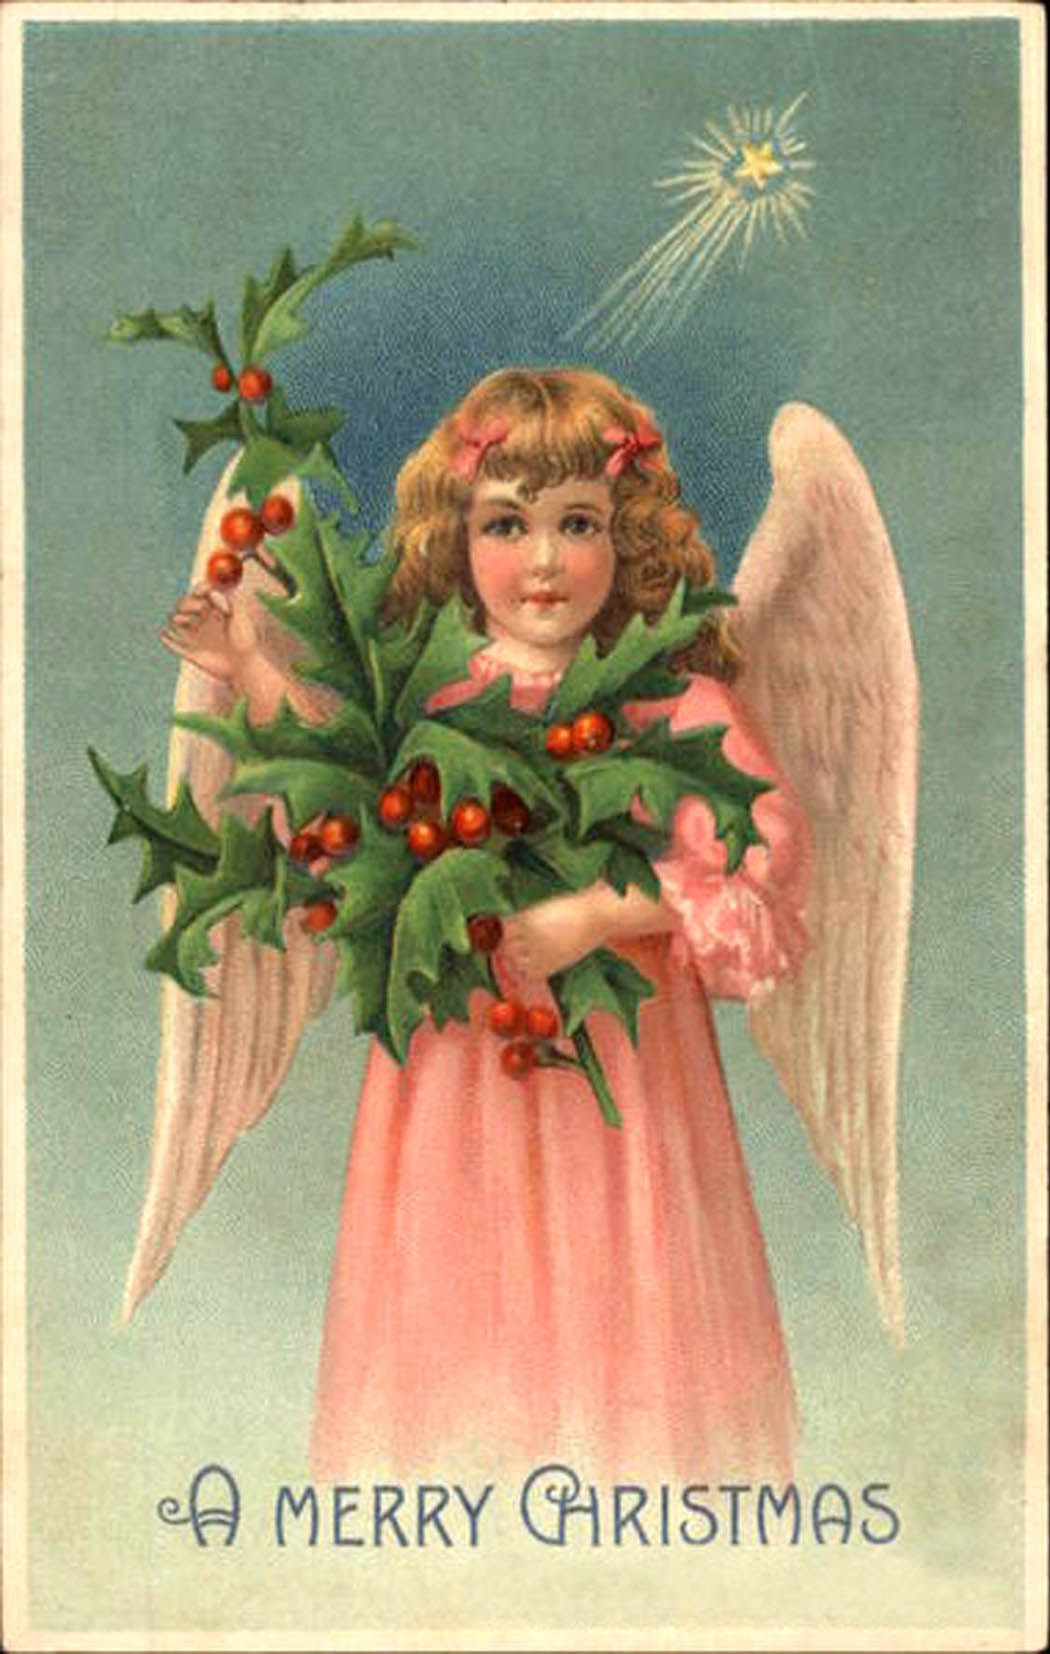 Card Of An Angel Girl In Pink Dress Holding A Holly Branch And Star